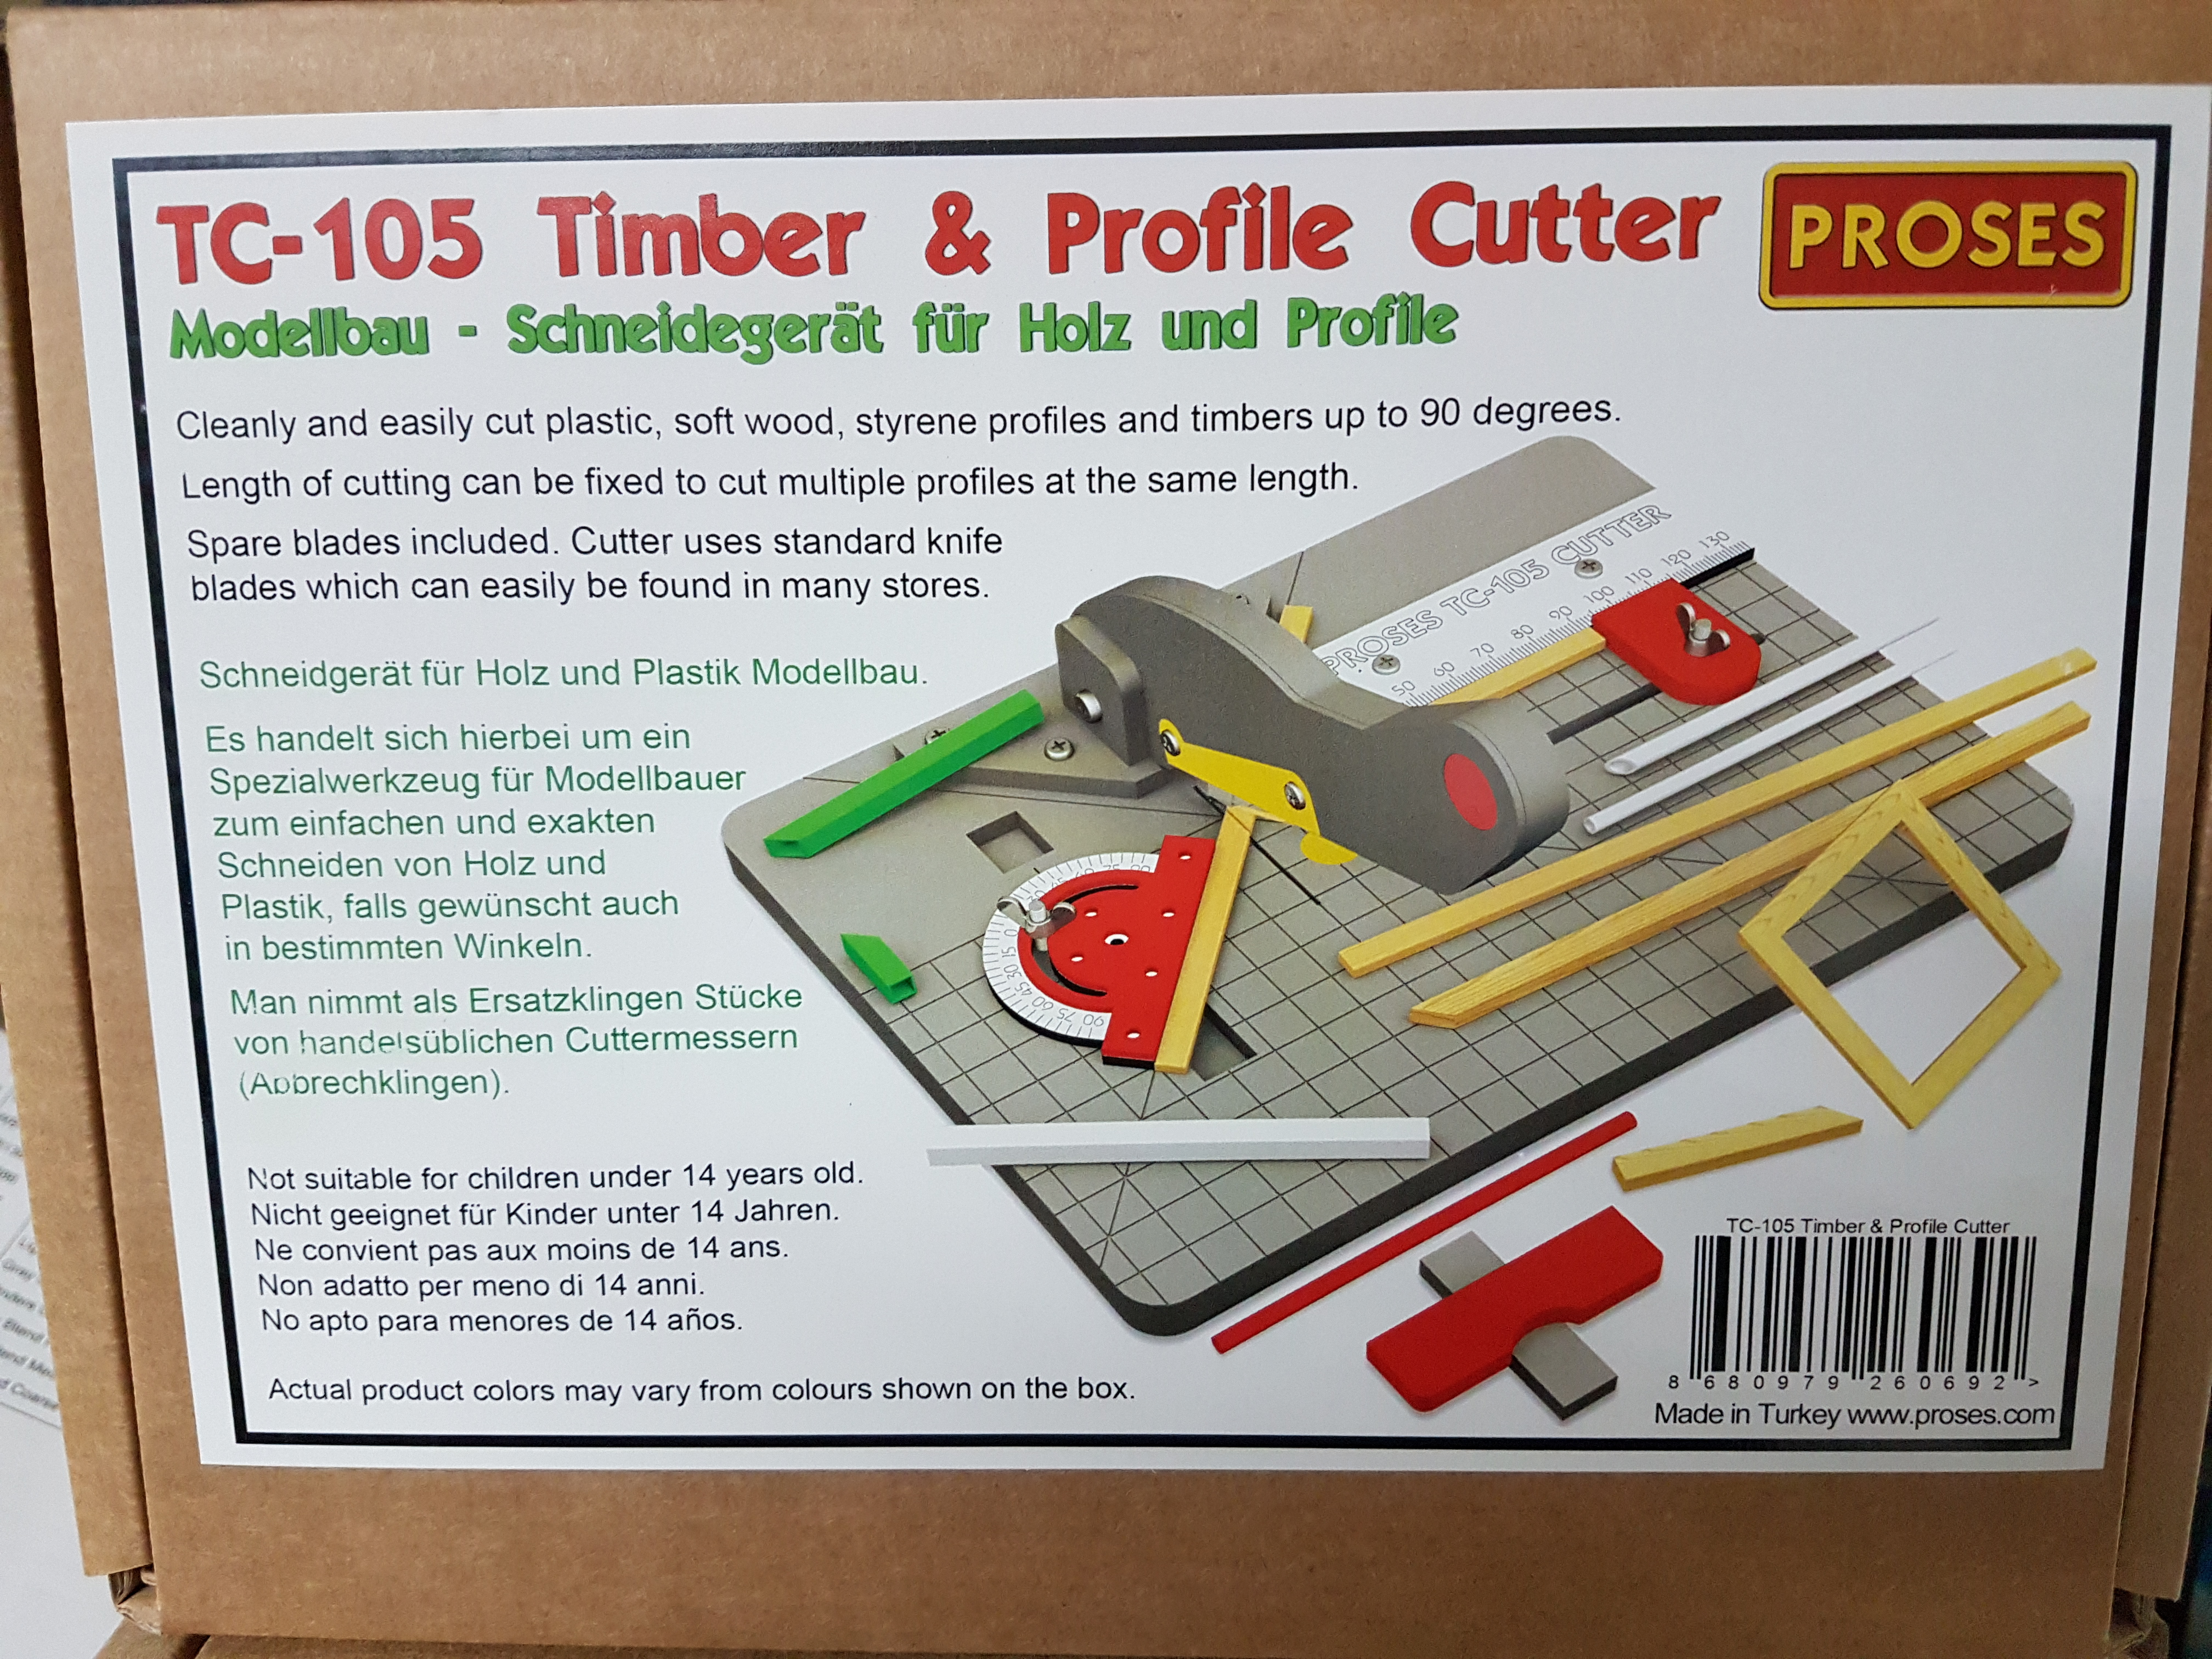 TC0105 timber & profile cutter